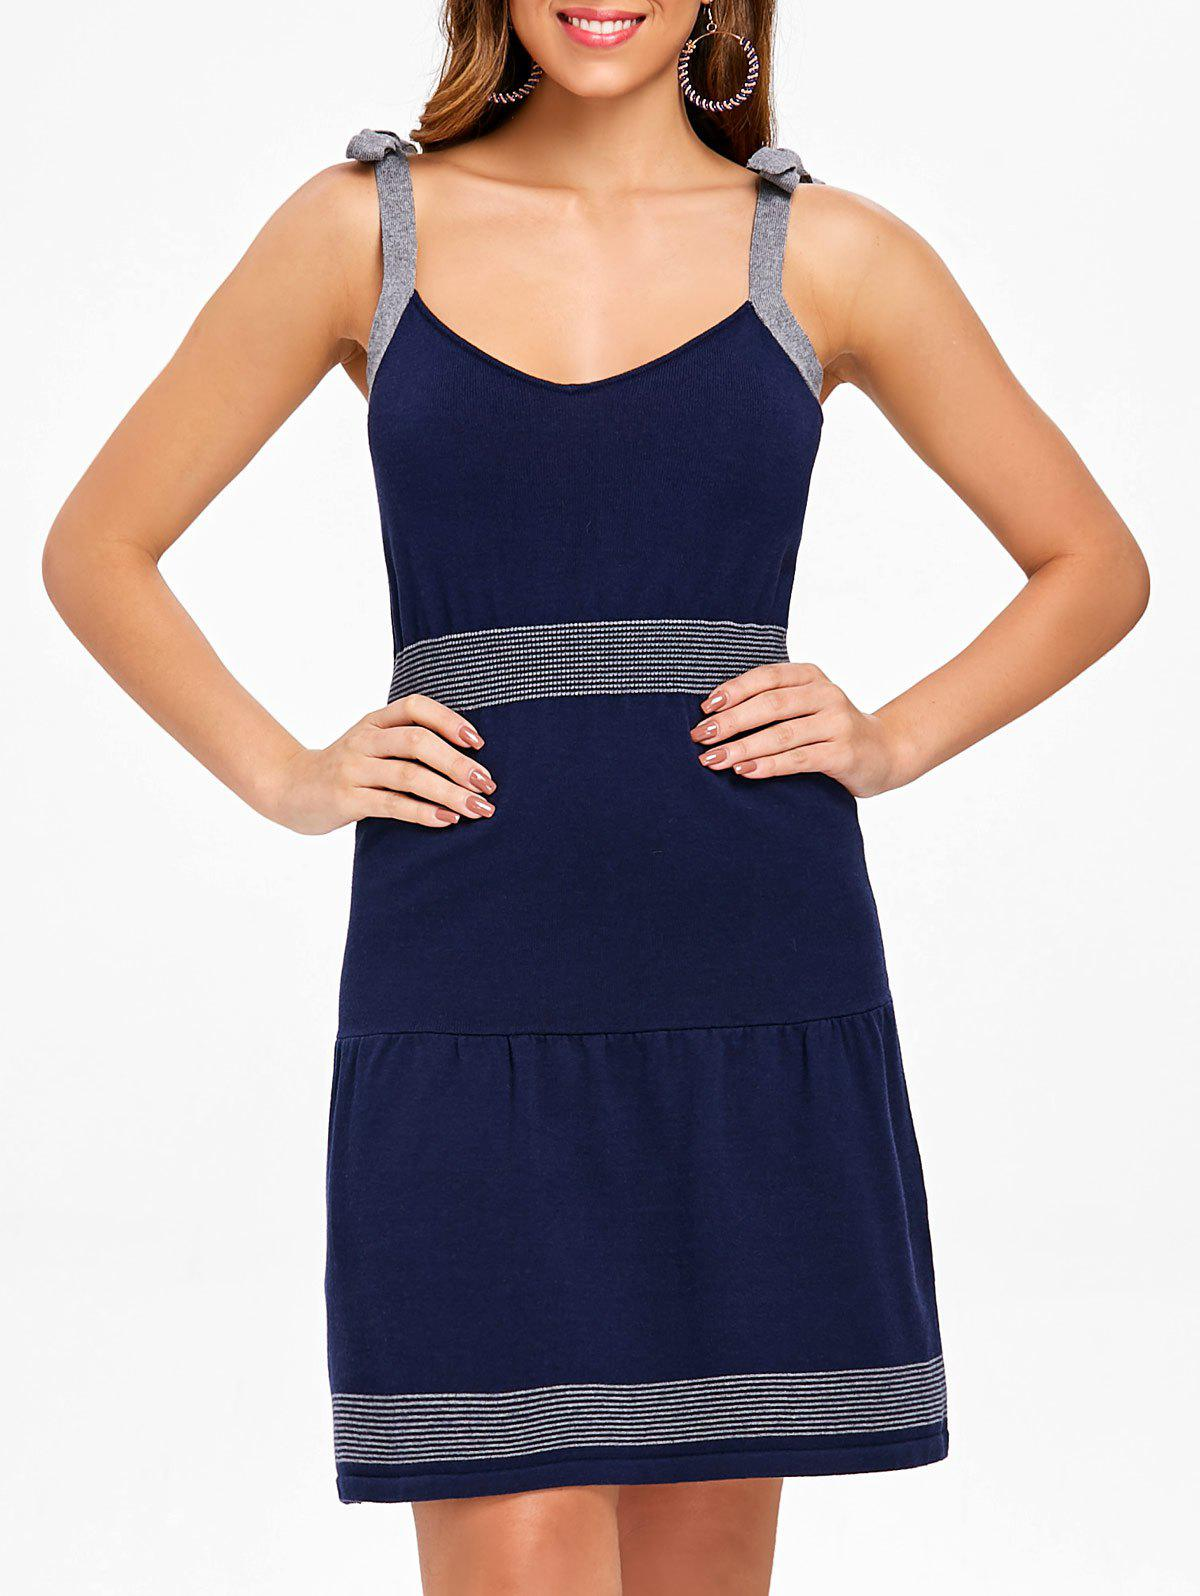 V Neck Sleeveless Jumper Dress